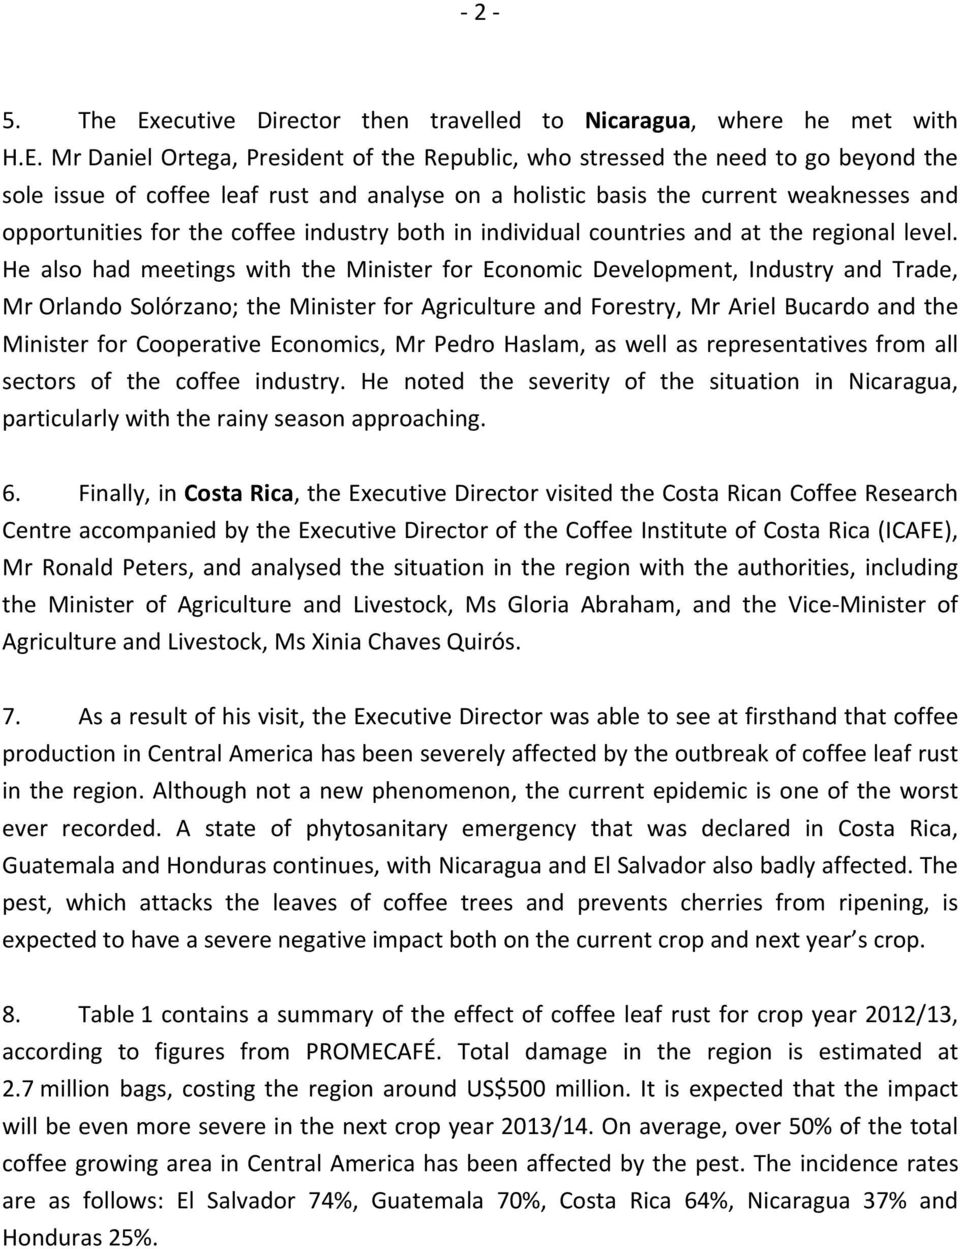 Mr Daniel Ortega, President of the Republic, who stressed the need to go beyond the sole issue of coffee leaf rust and analyse on a holistic basis the current weaknesses and opportunities for the